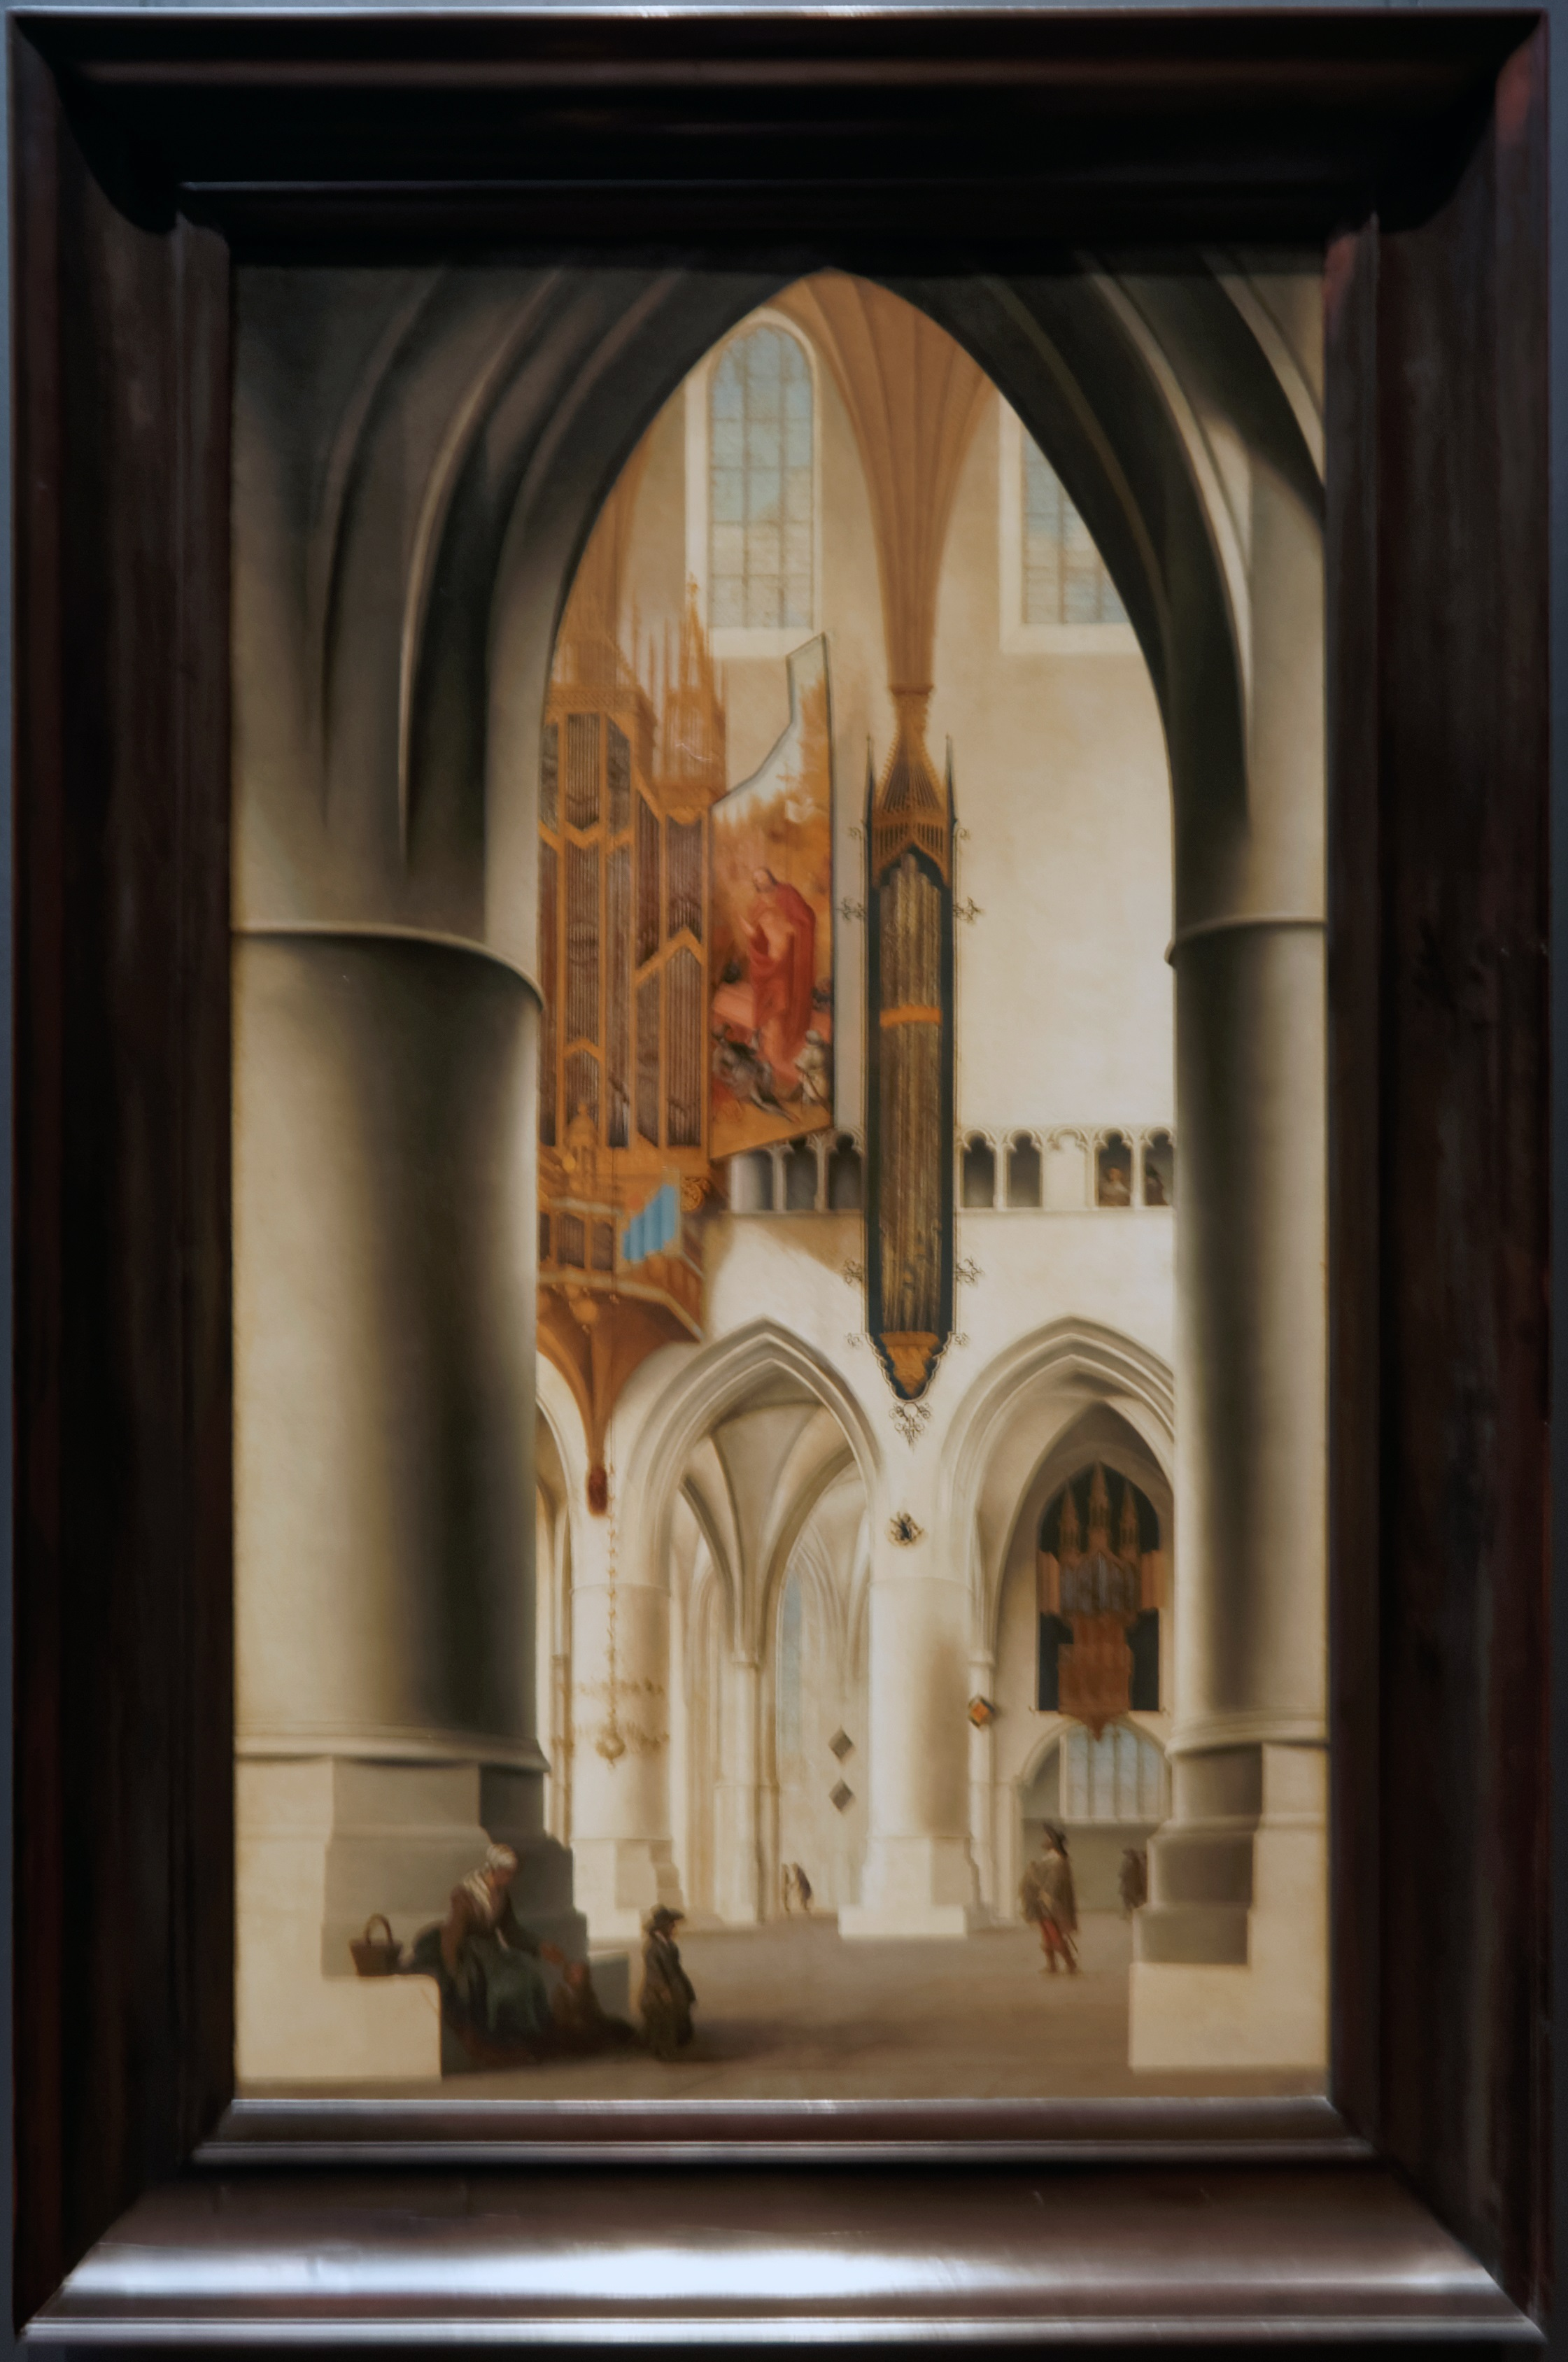 https://upload.wikimedia.org/wikipedia/commons/d/d1/Amsterdam_-_Rijksmuseum_1885_-_The_Gallery_of_Honour_%281st_Floor%29_-_Interior_of_the_Church_of_St_Bavo_at_Haarlem_1636_by_Pieter_Jansz._Saenredam.jpg